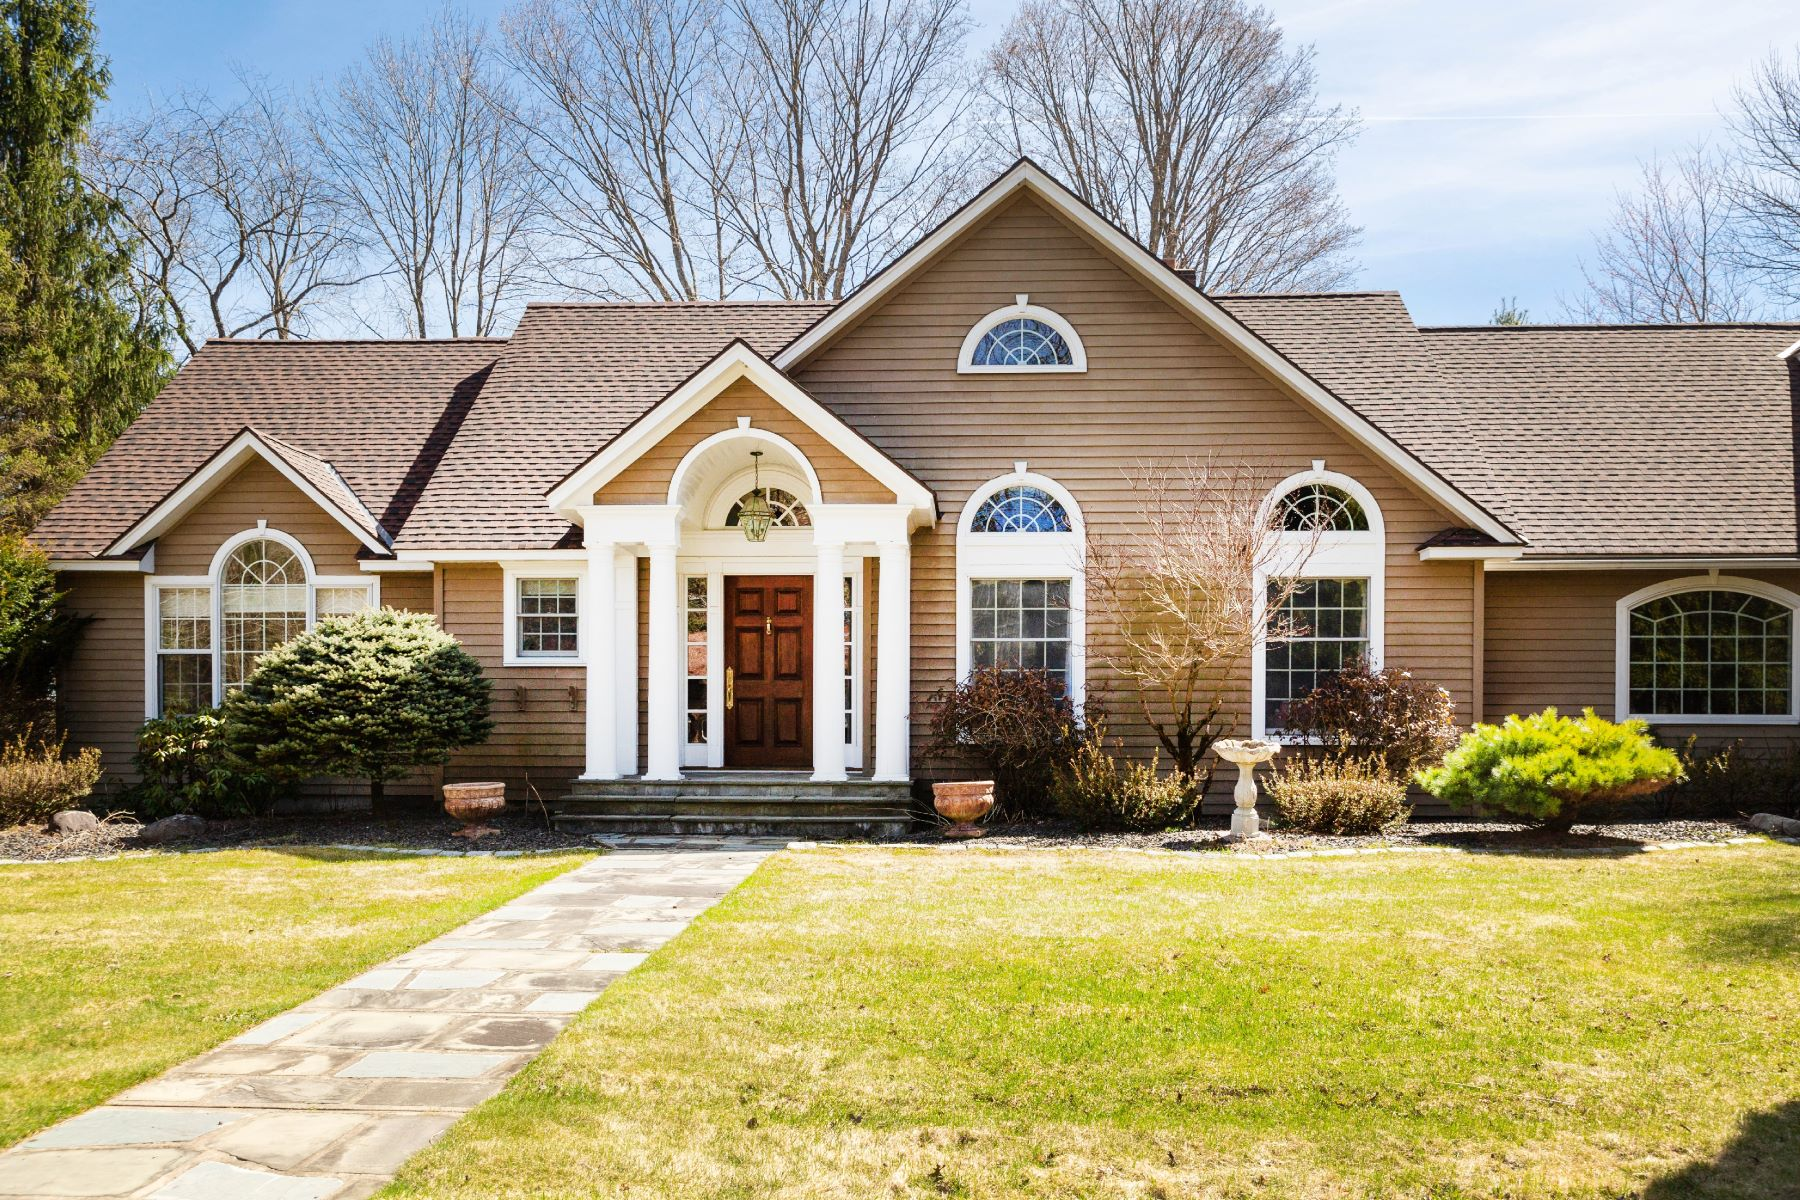 Single Family Homes for Sale at Executive Home in Upstate NY 33 Albea Dr Hagaman, New York 12086 United States